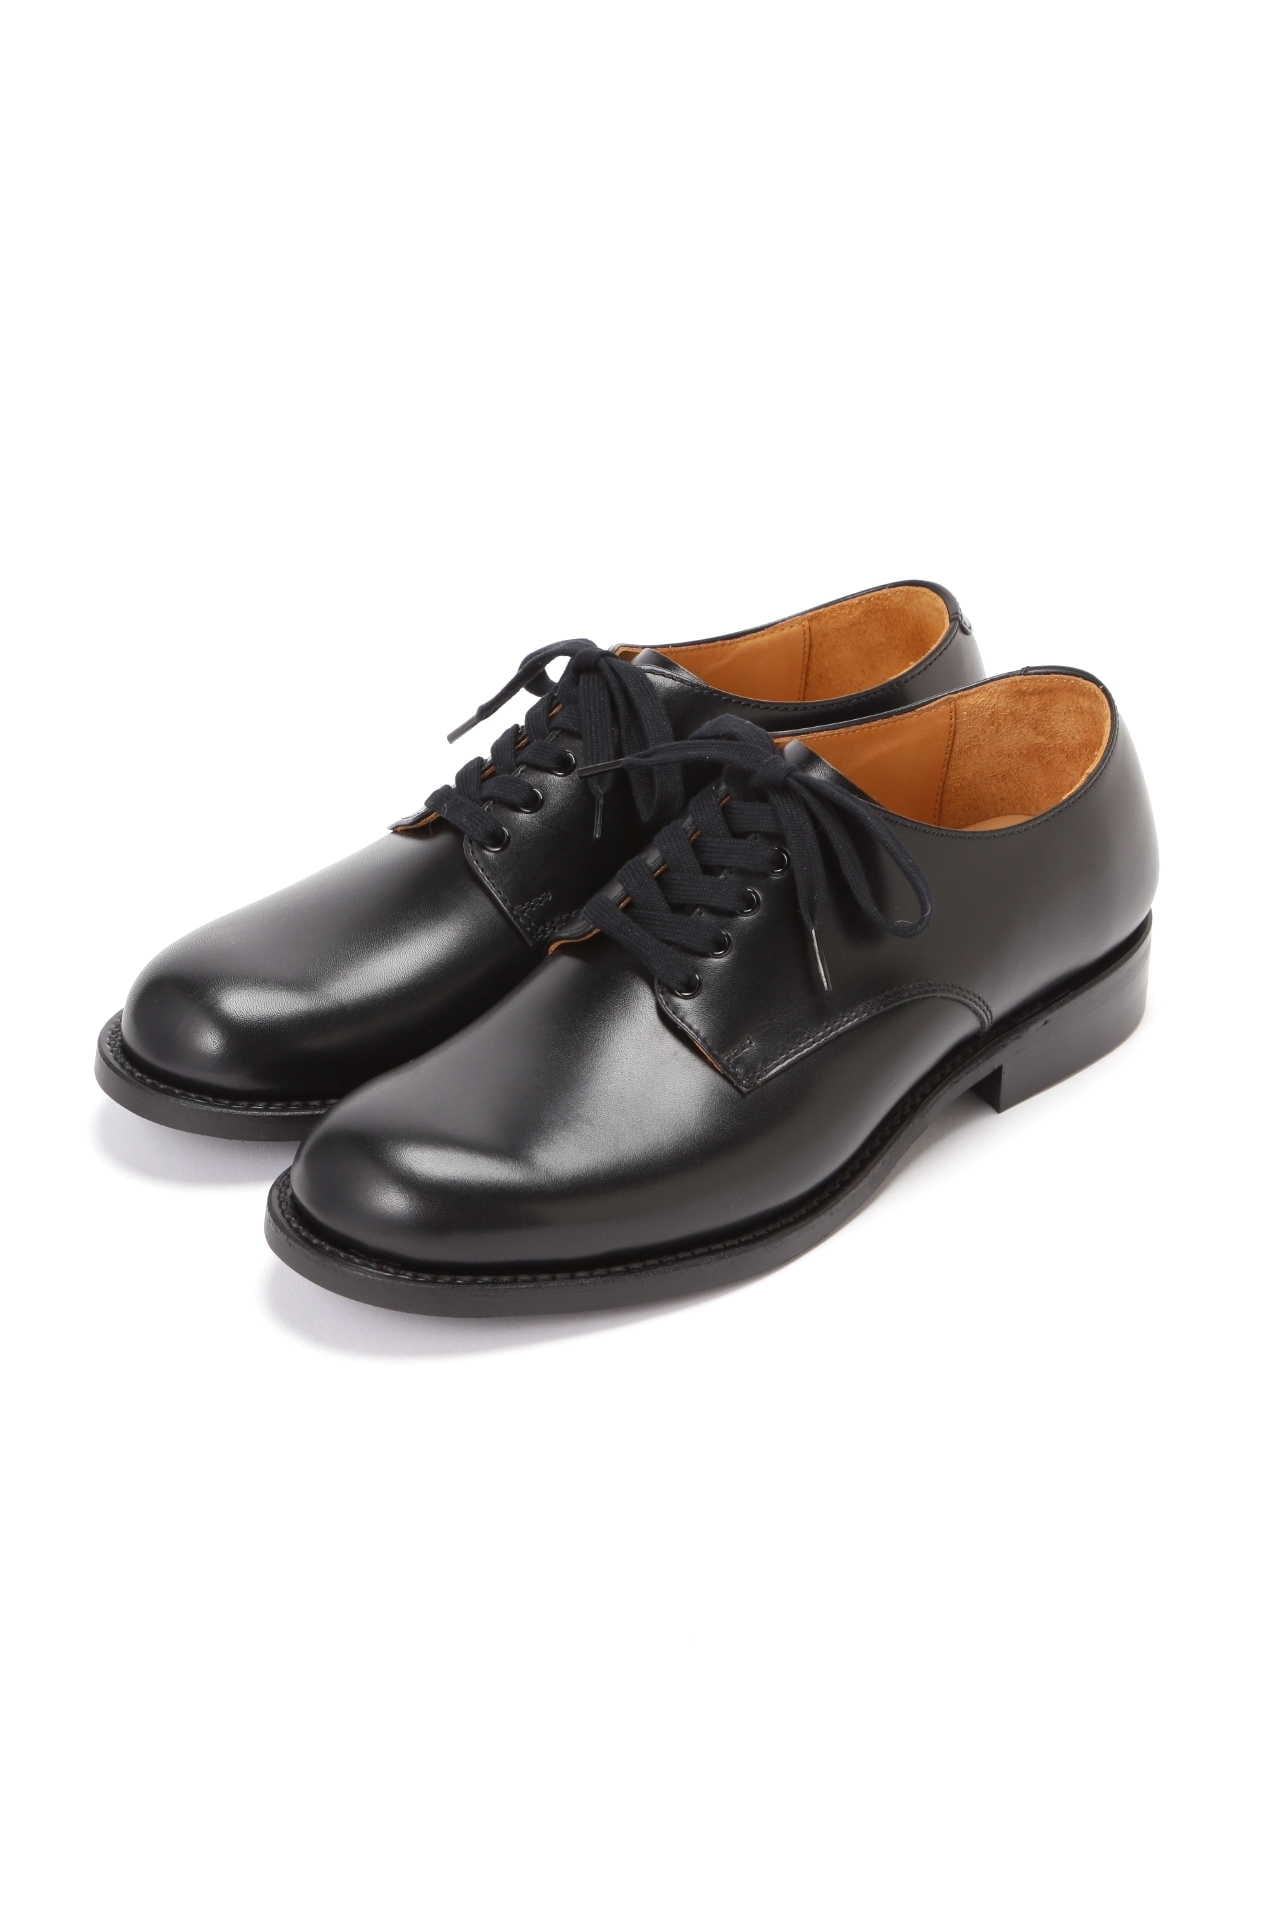 LEATHER LACE UP SHOES13